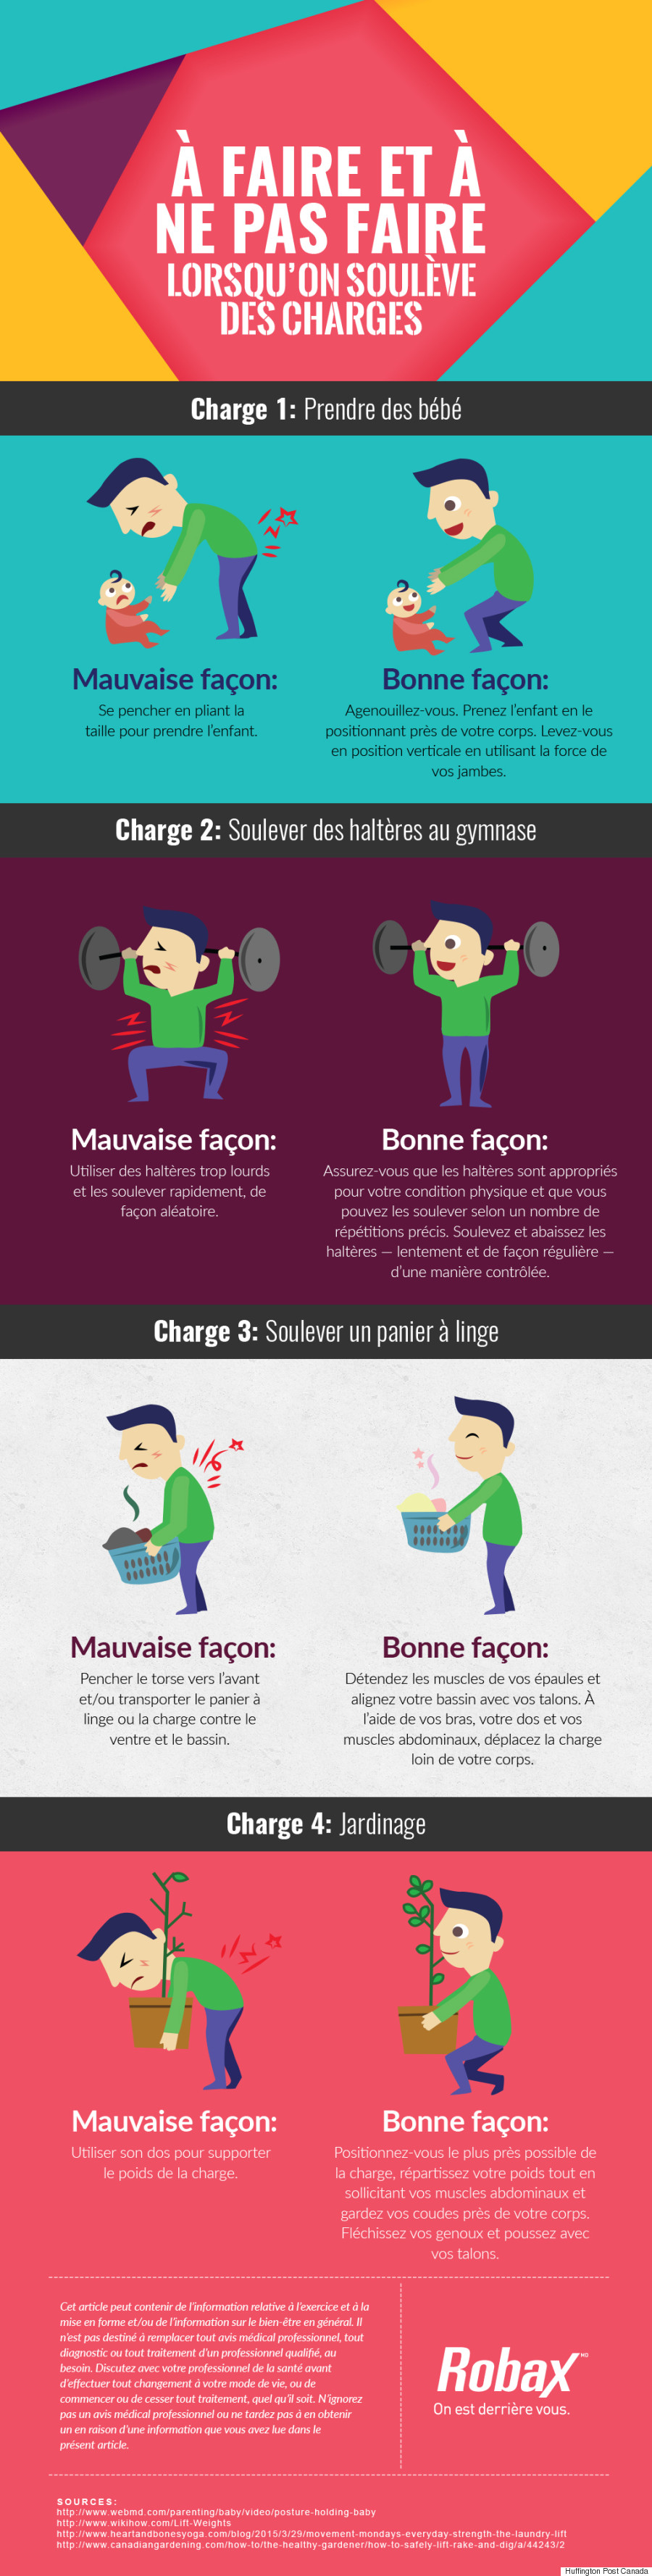 robax french infographic